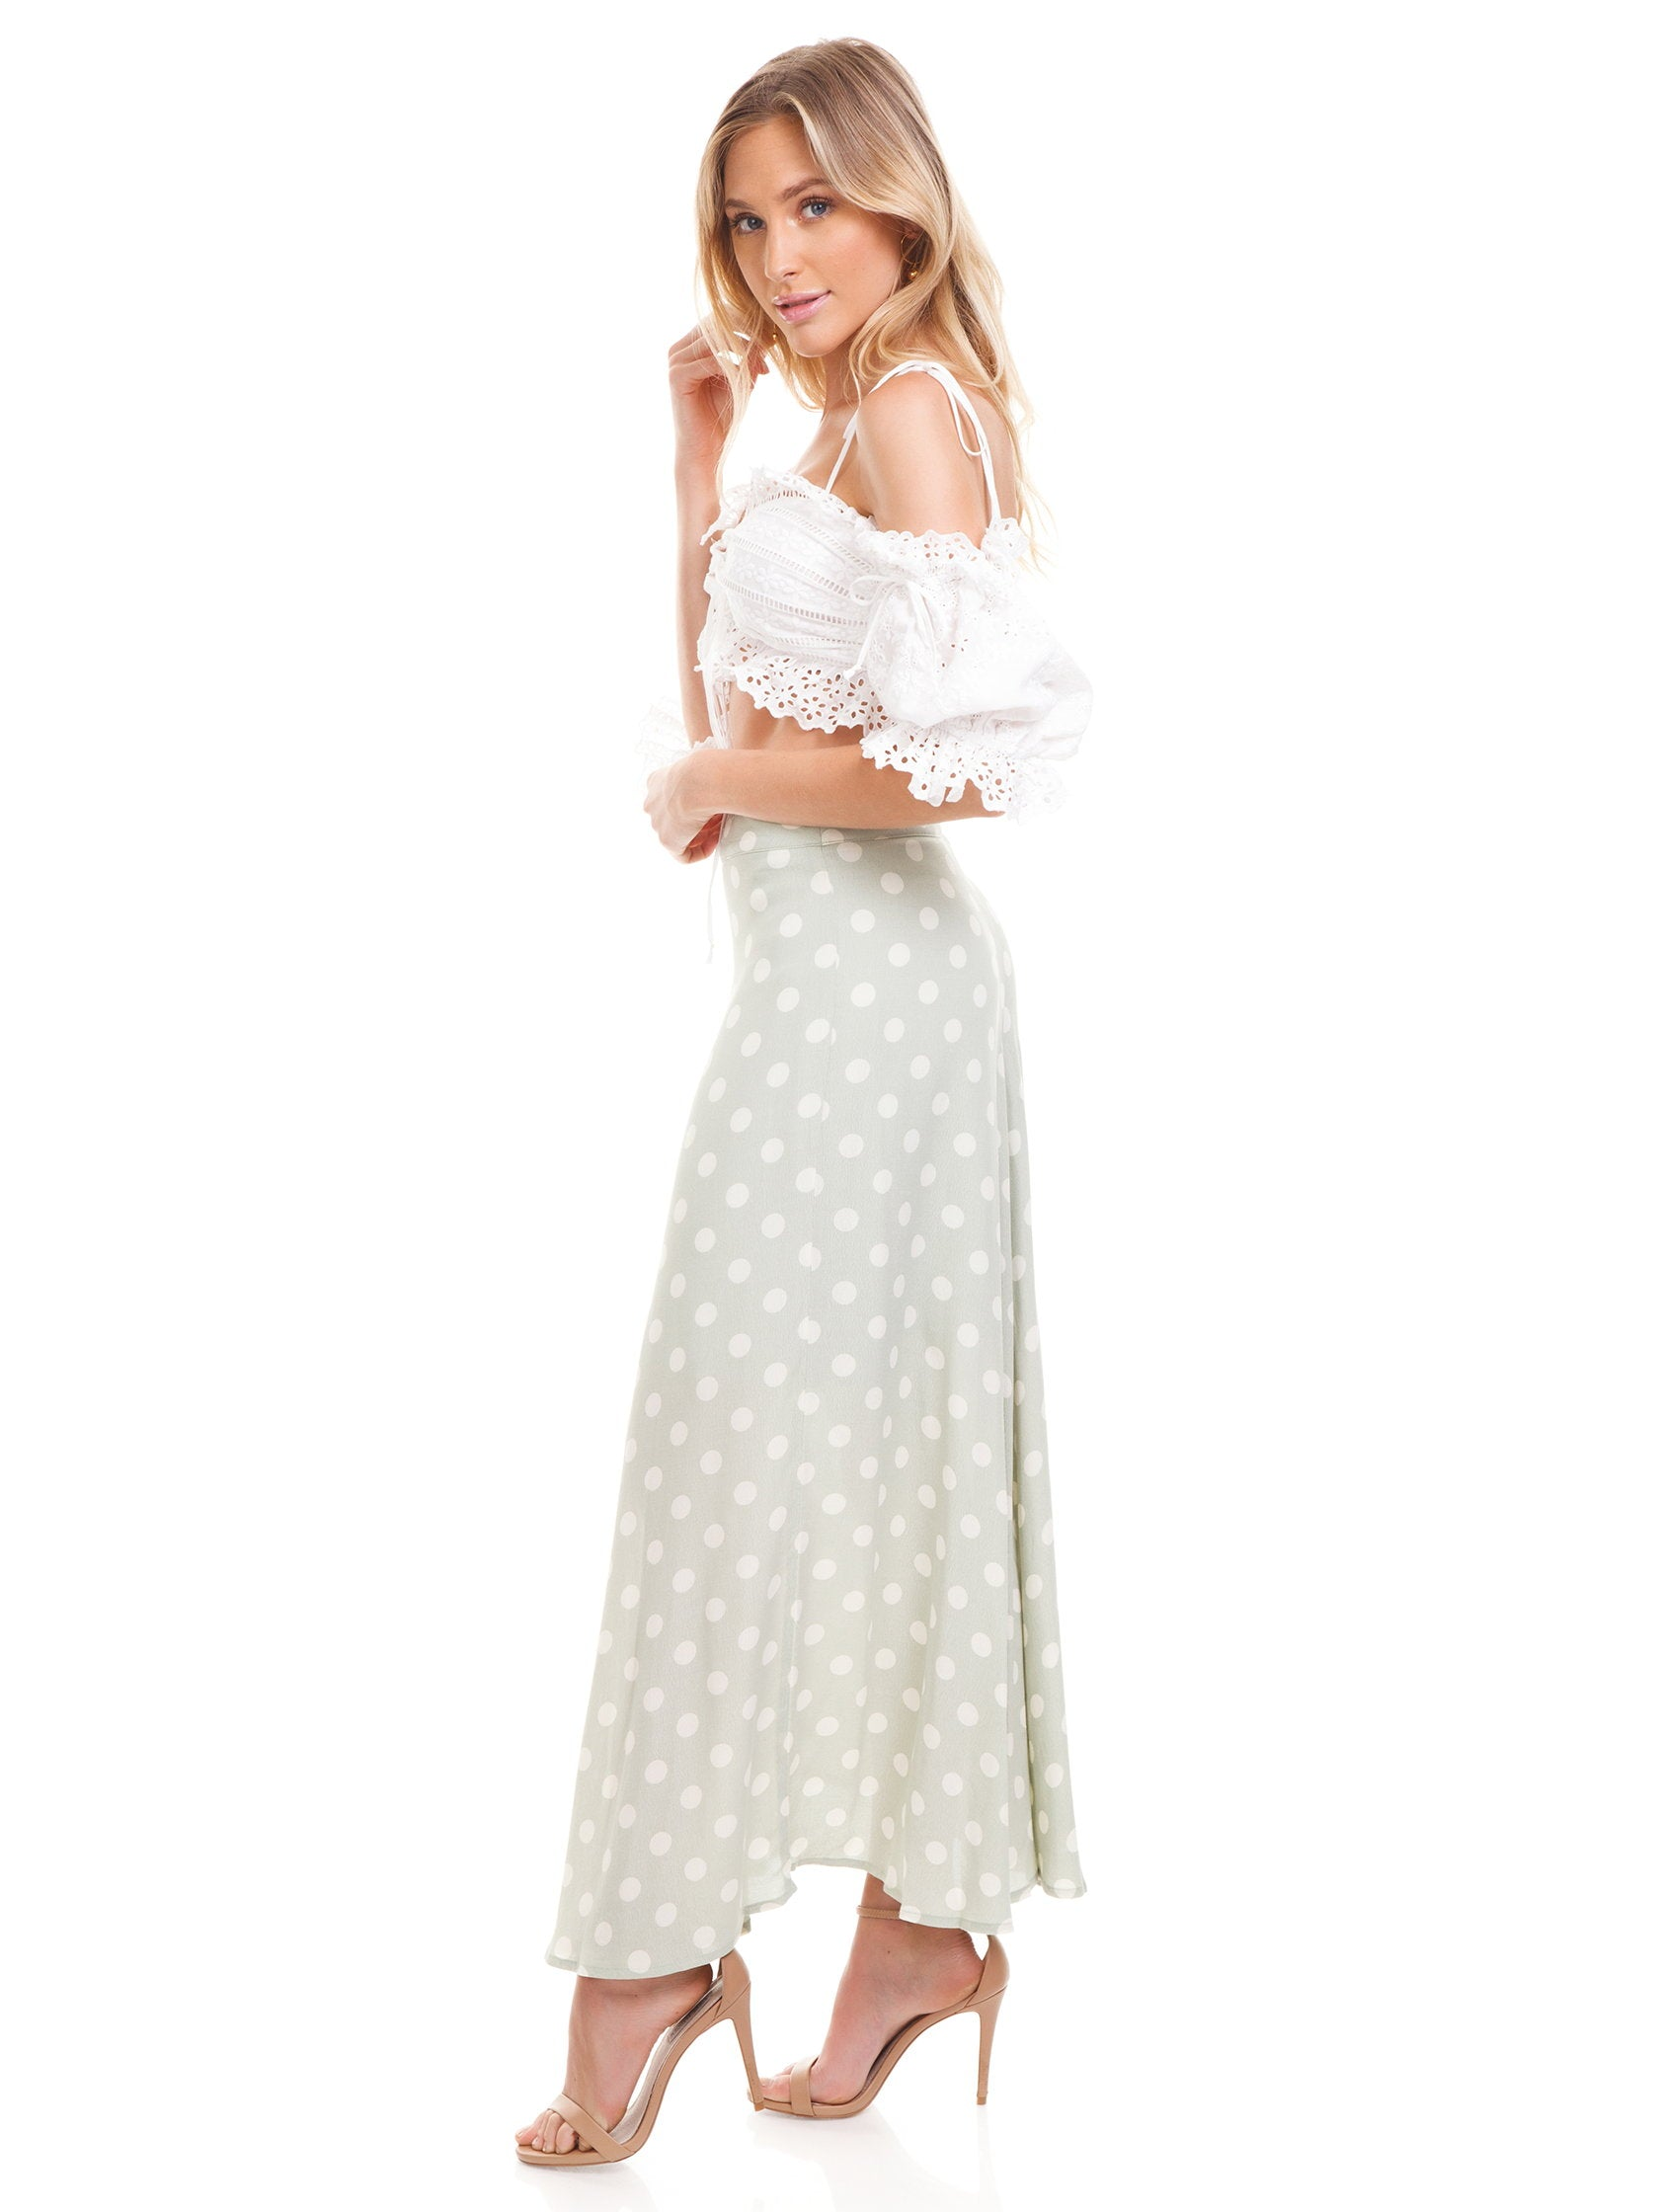 Girl outfit in a skirt rental from Capulet called Madie Midi Skirt